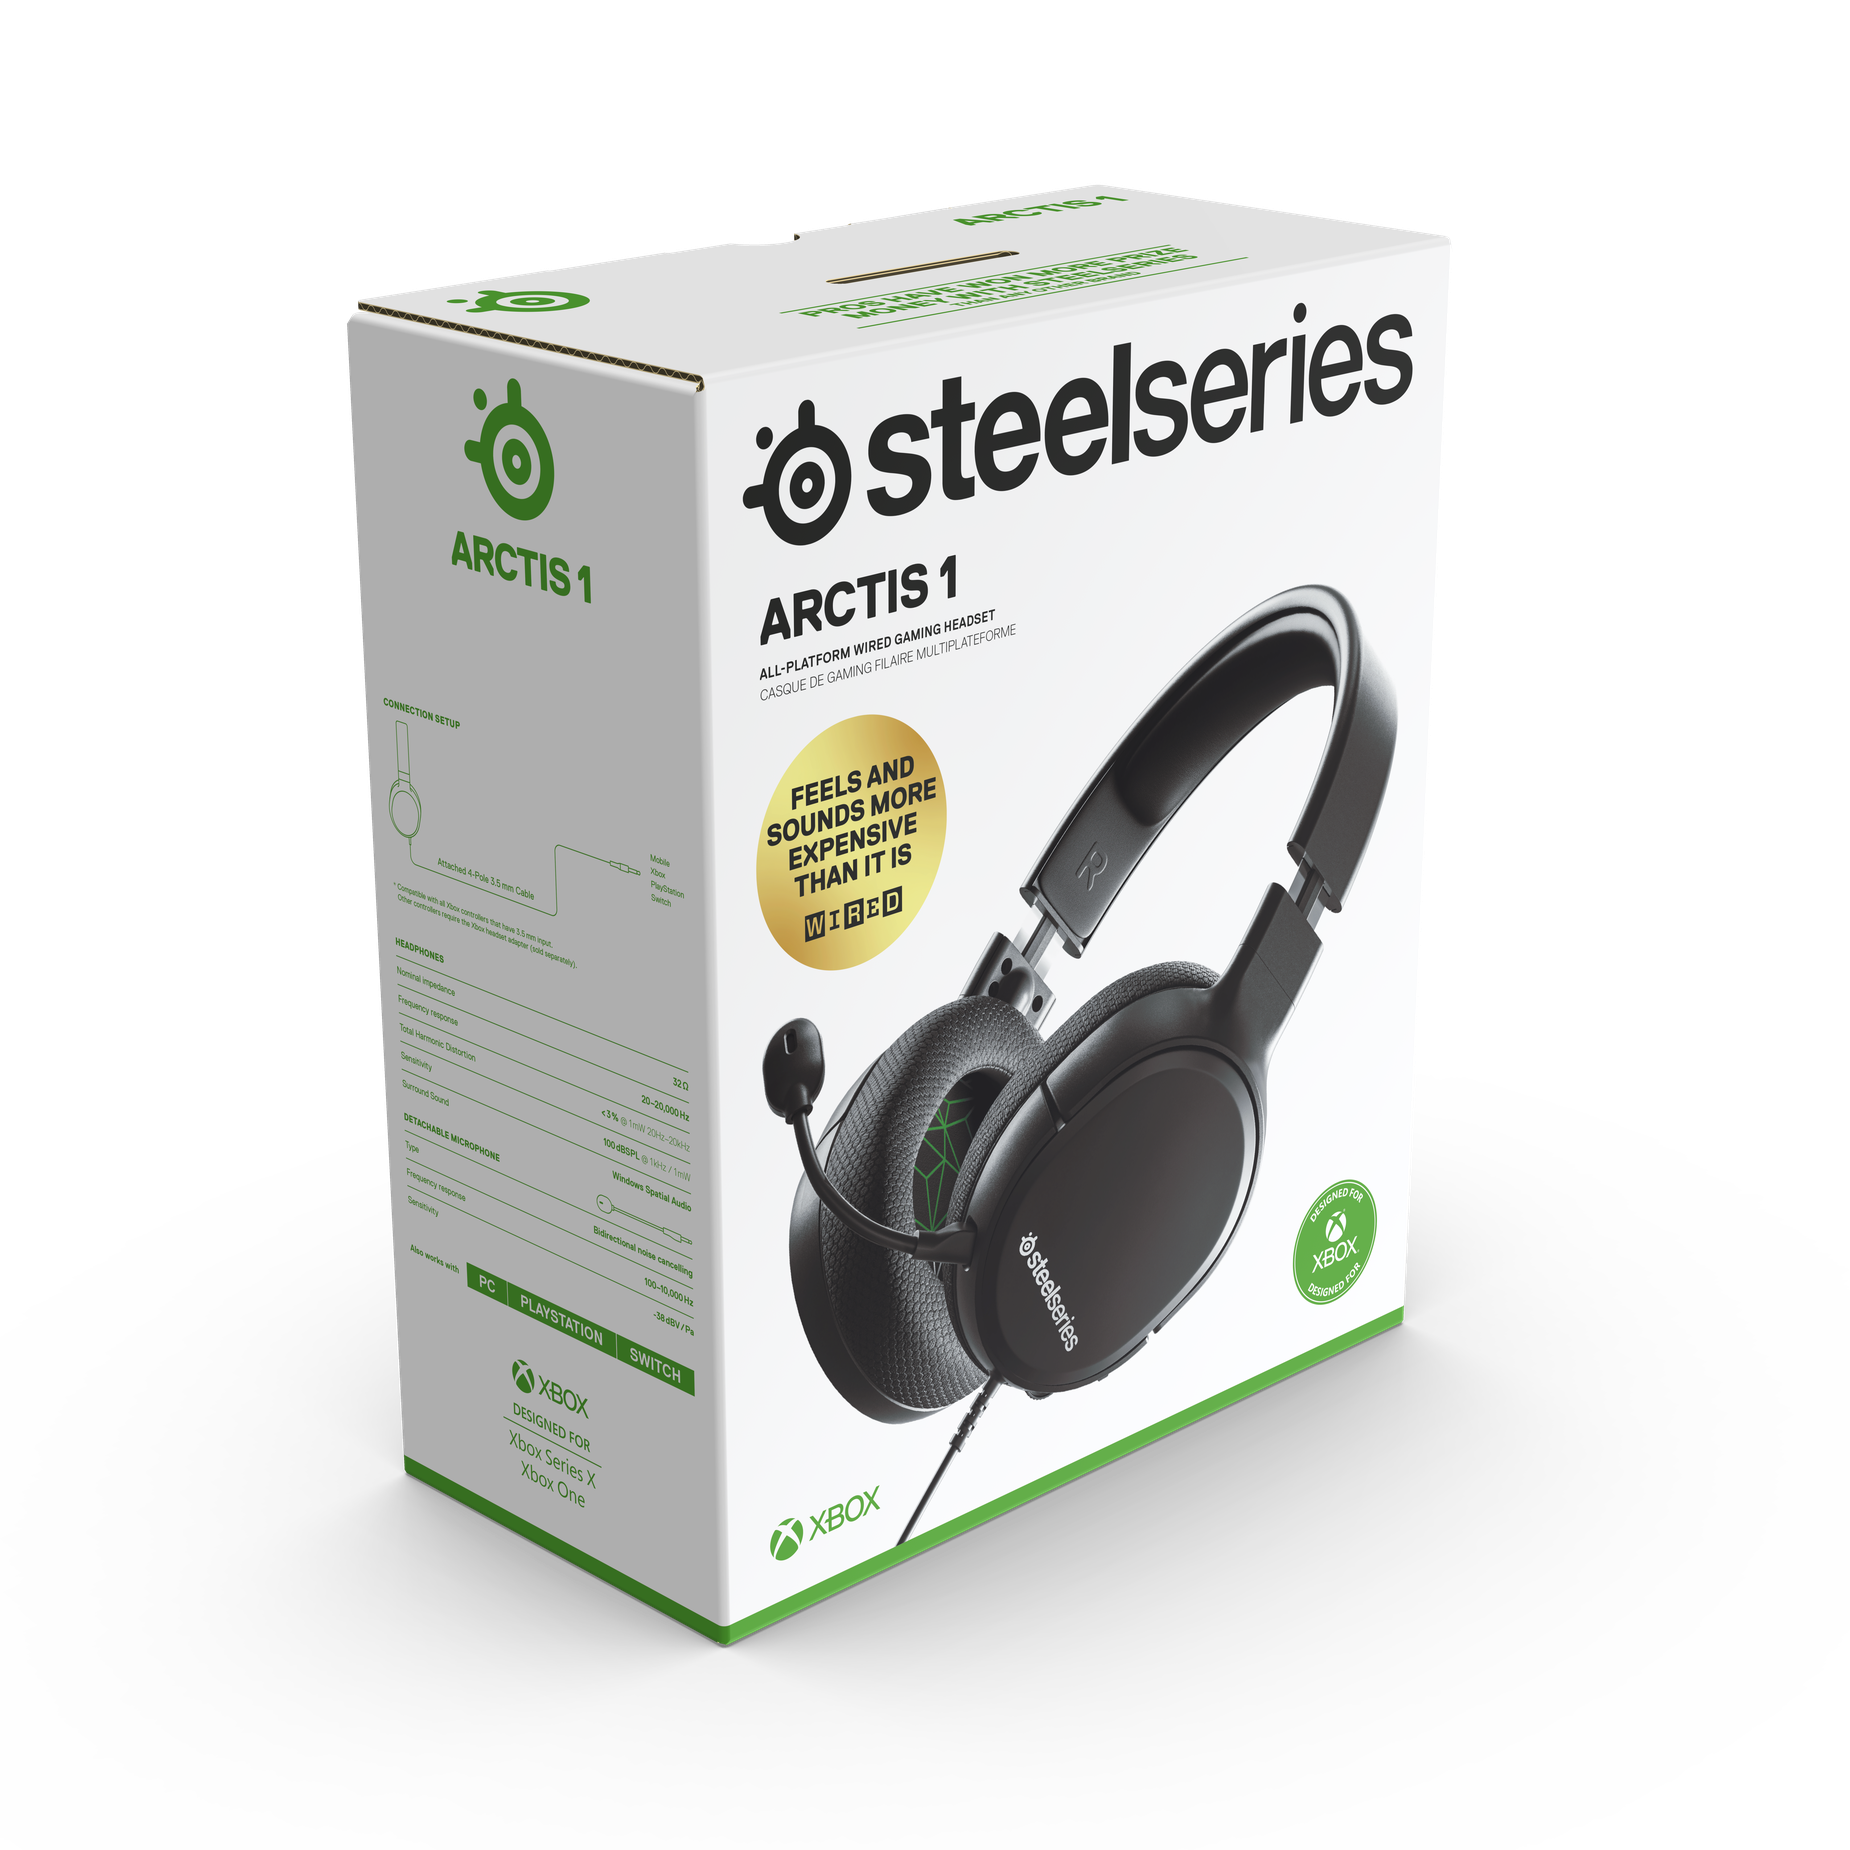 Retail packaging for the Arctis 1 for Xbox gaming headset.